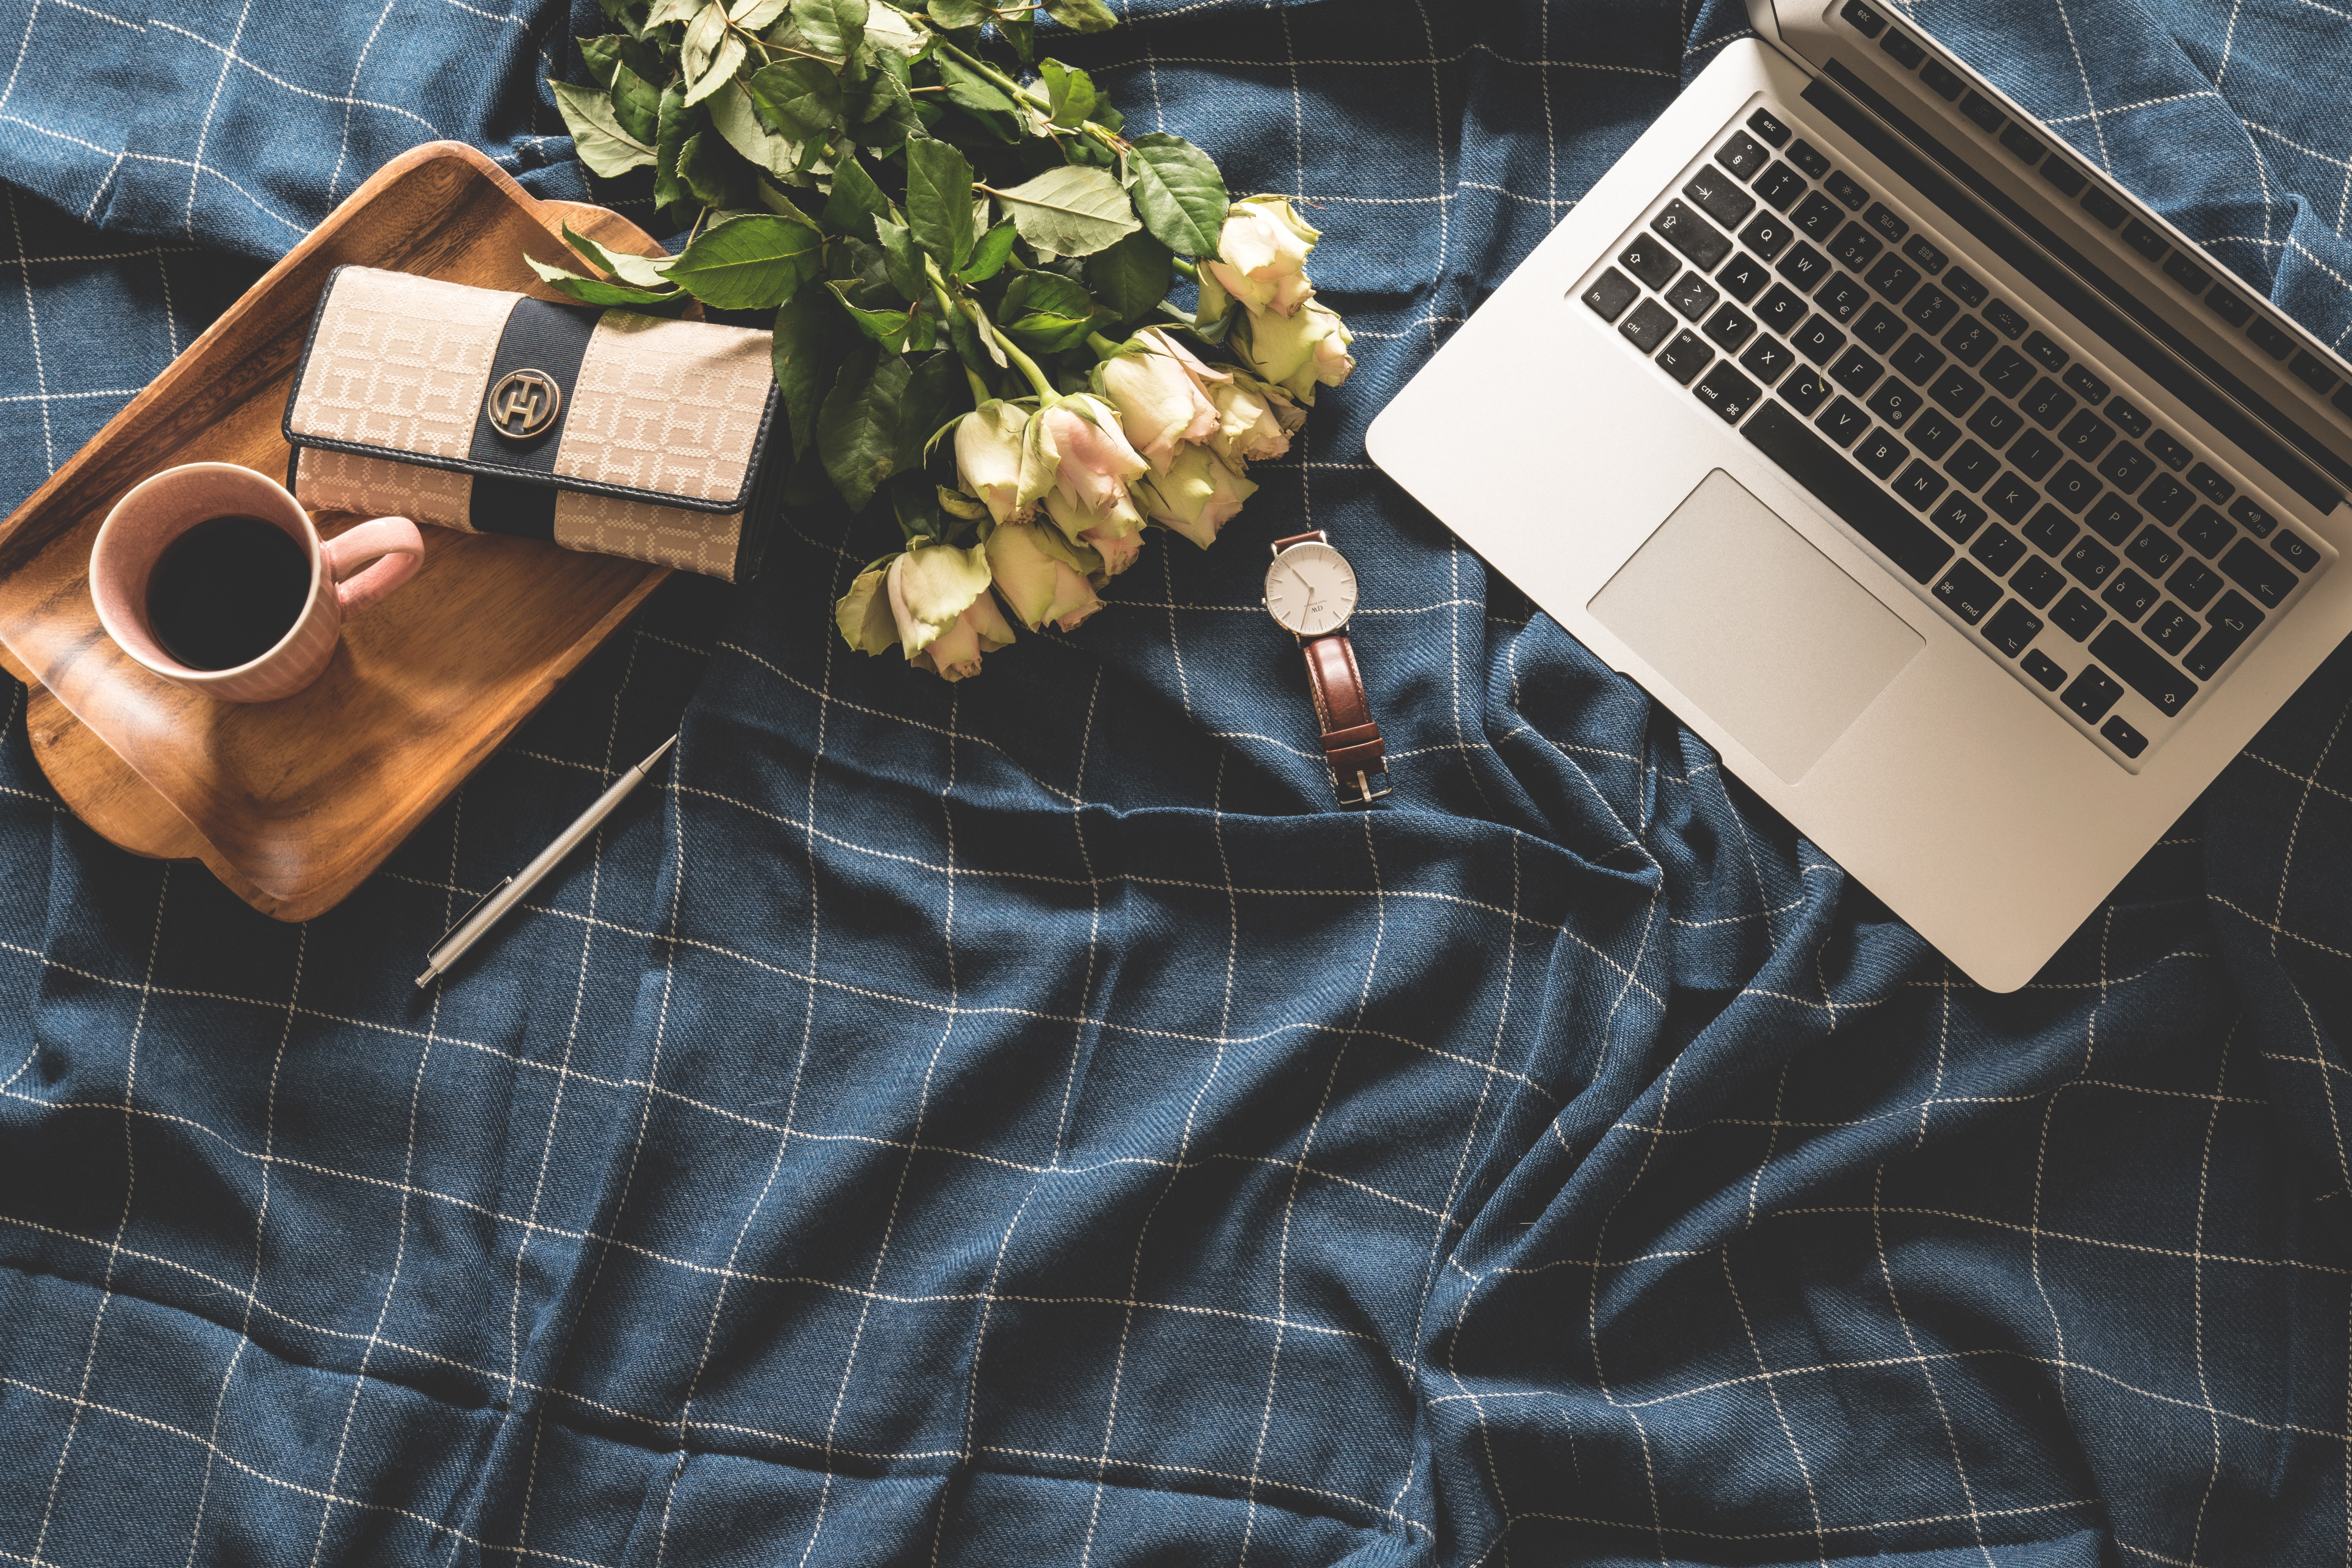 flat lay photography of MacBook Pro, wallet, watch, coffee, tray, and bouquet of flower